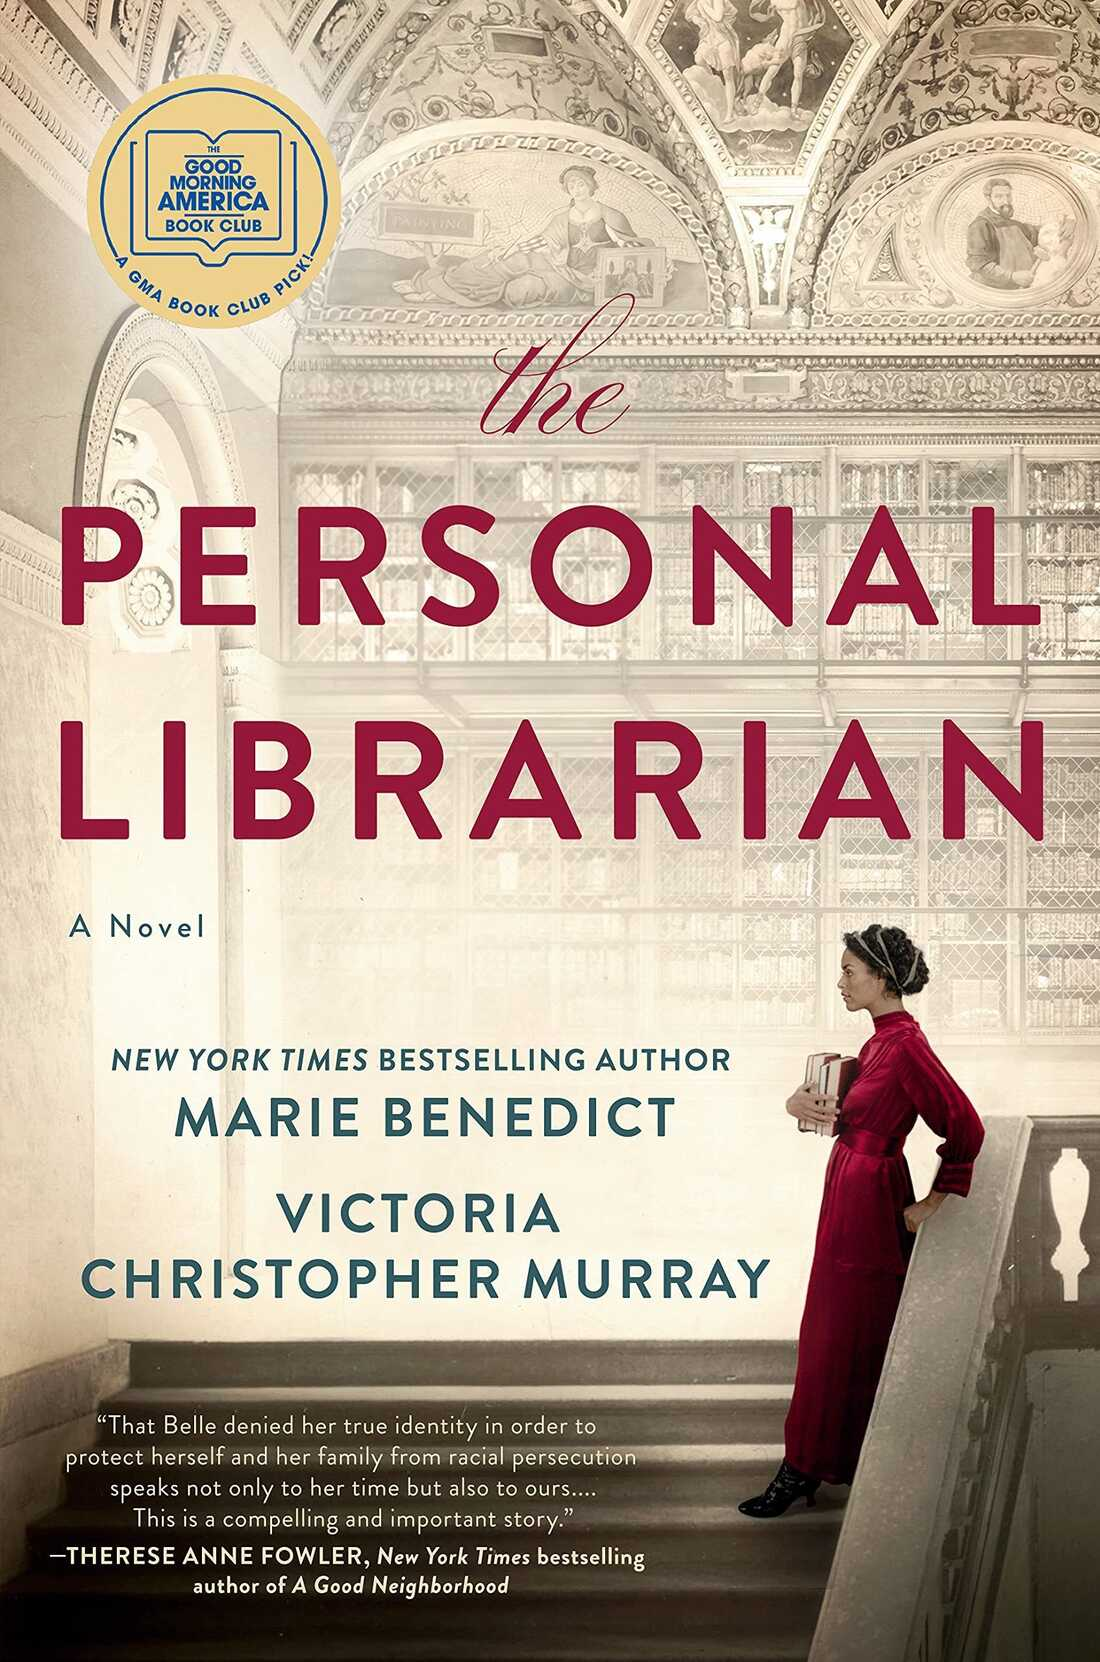 The Personal Librarian, by Marie Benedict and Victoria Christopher Murray